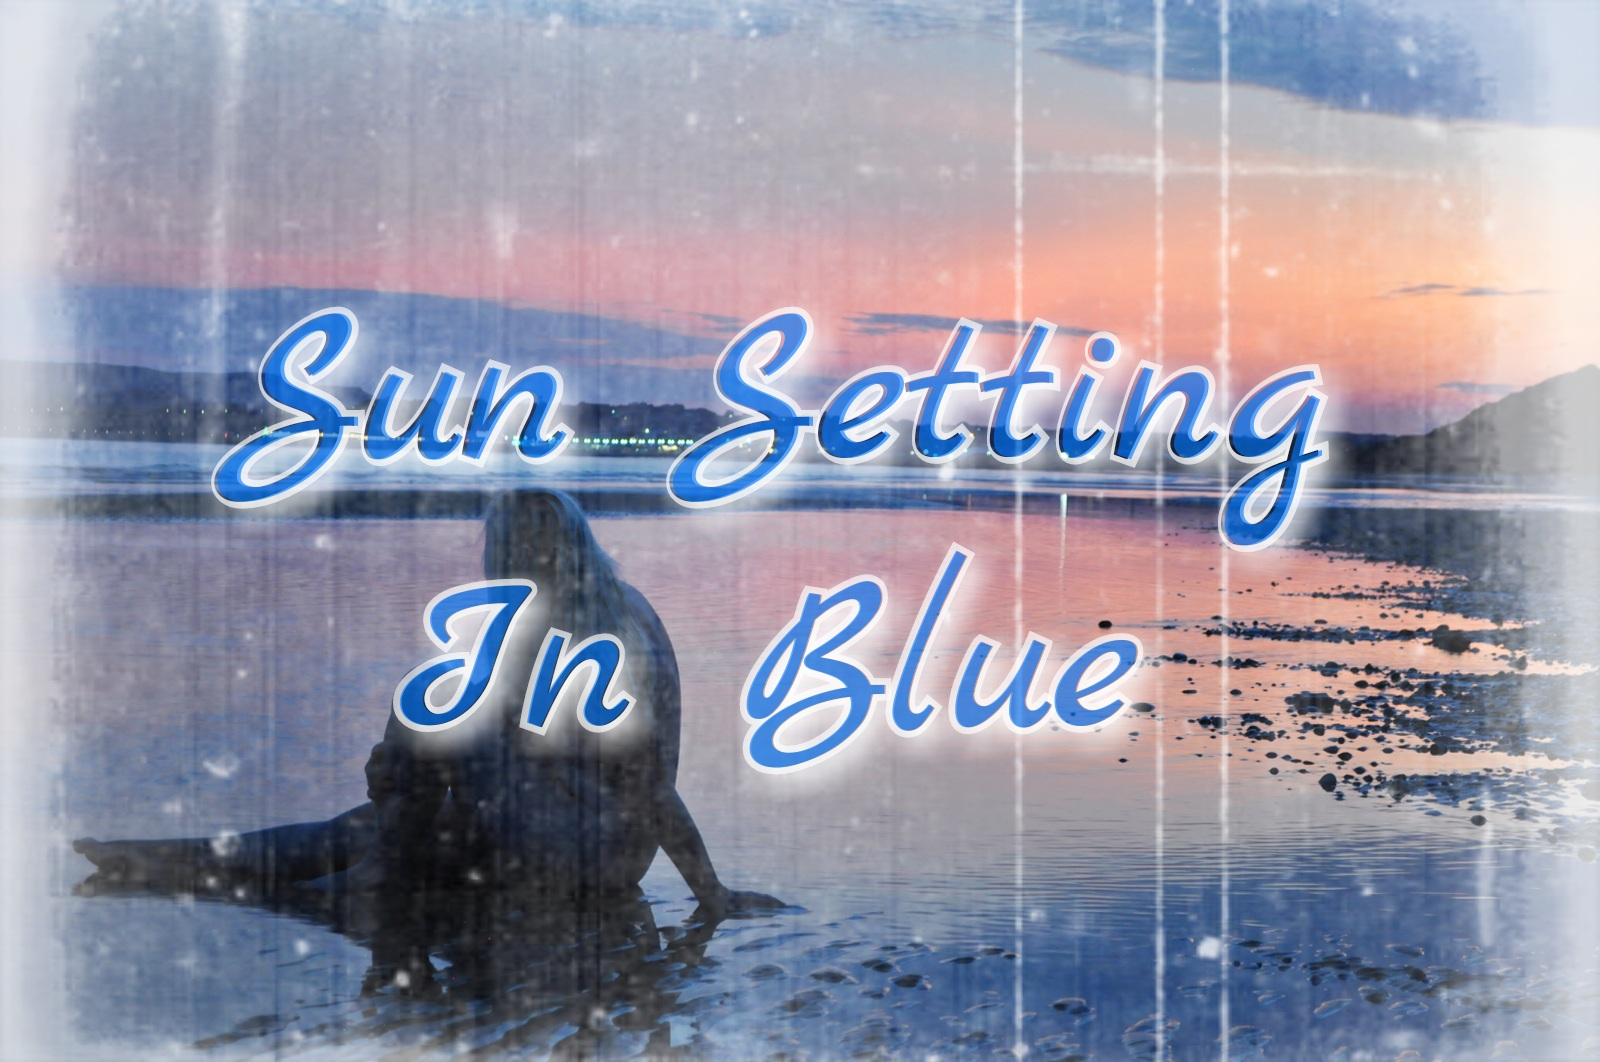 Sinful Sunday - Sun Setting In Blue